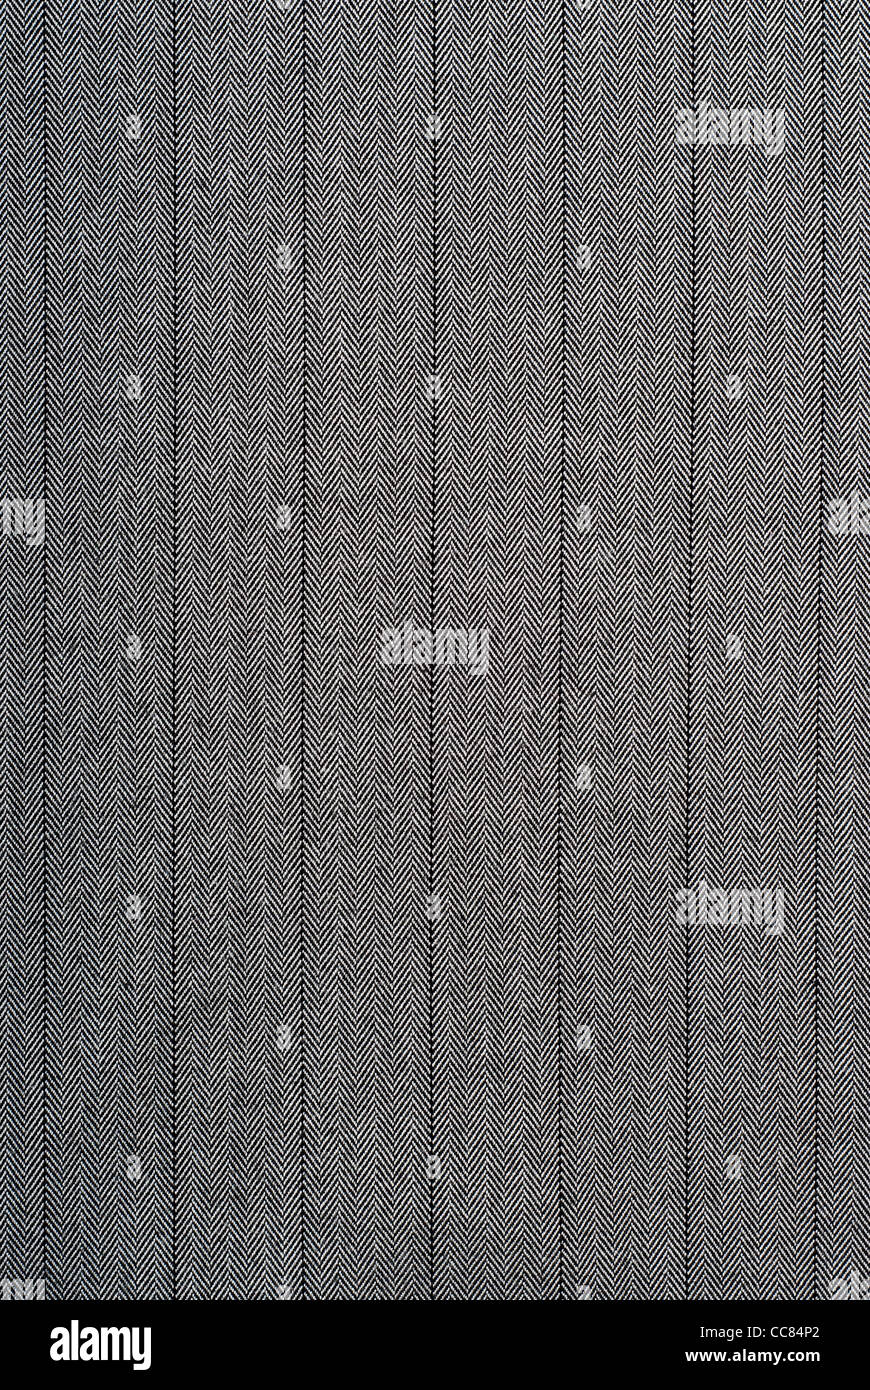 closeup of a black and white striped fabric suitable as a texture - Stock Image